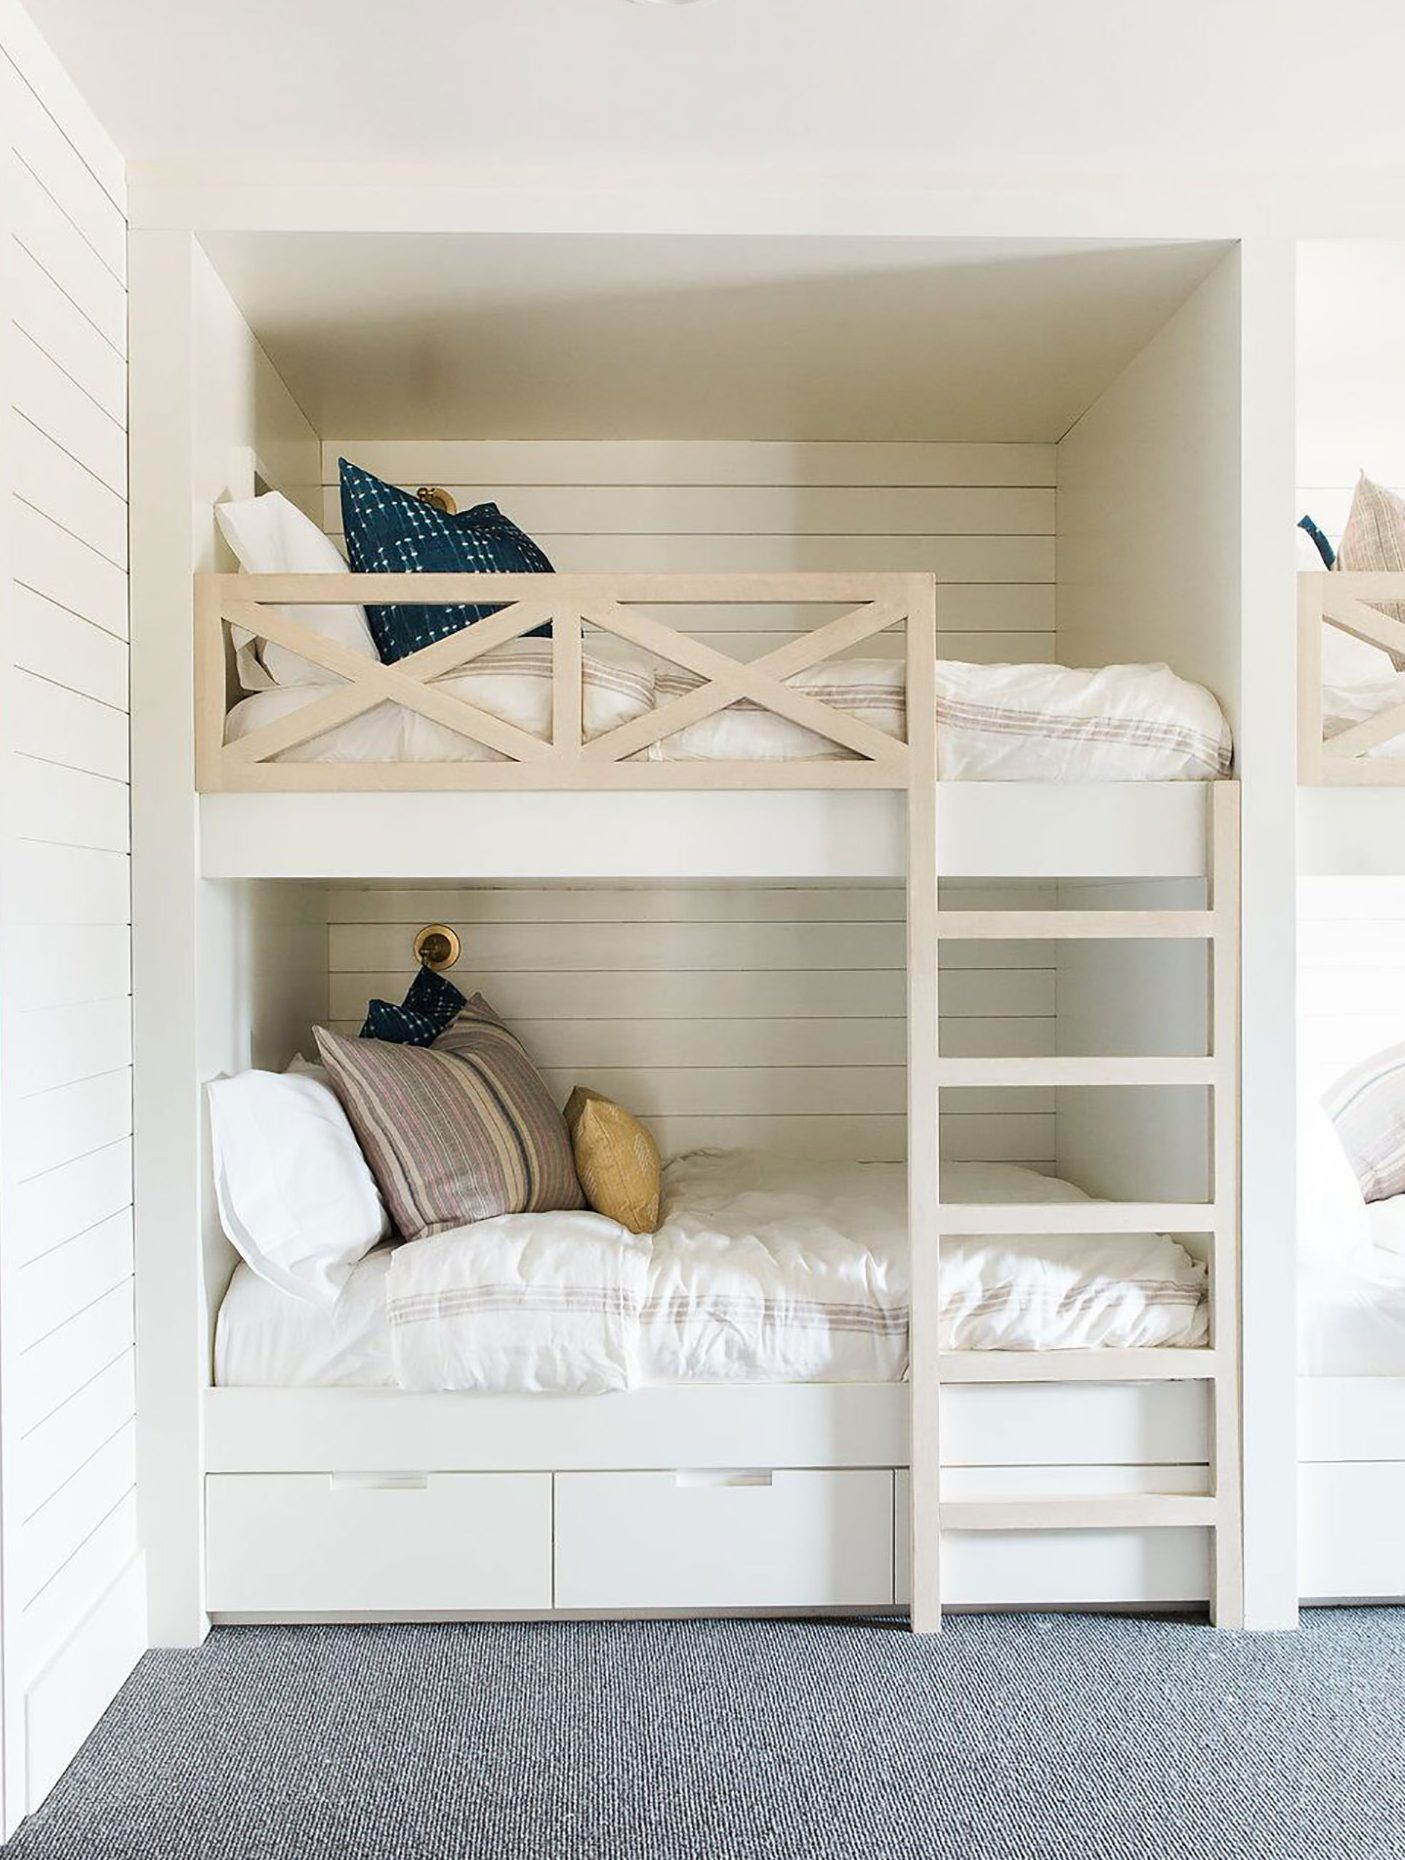 How We Made Built In Bunk Beds At The Beach House Cool Bunk Beds Bunk Bed Rooms Bunk Beds Built In